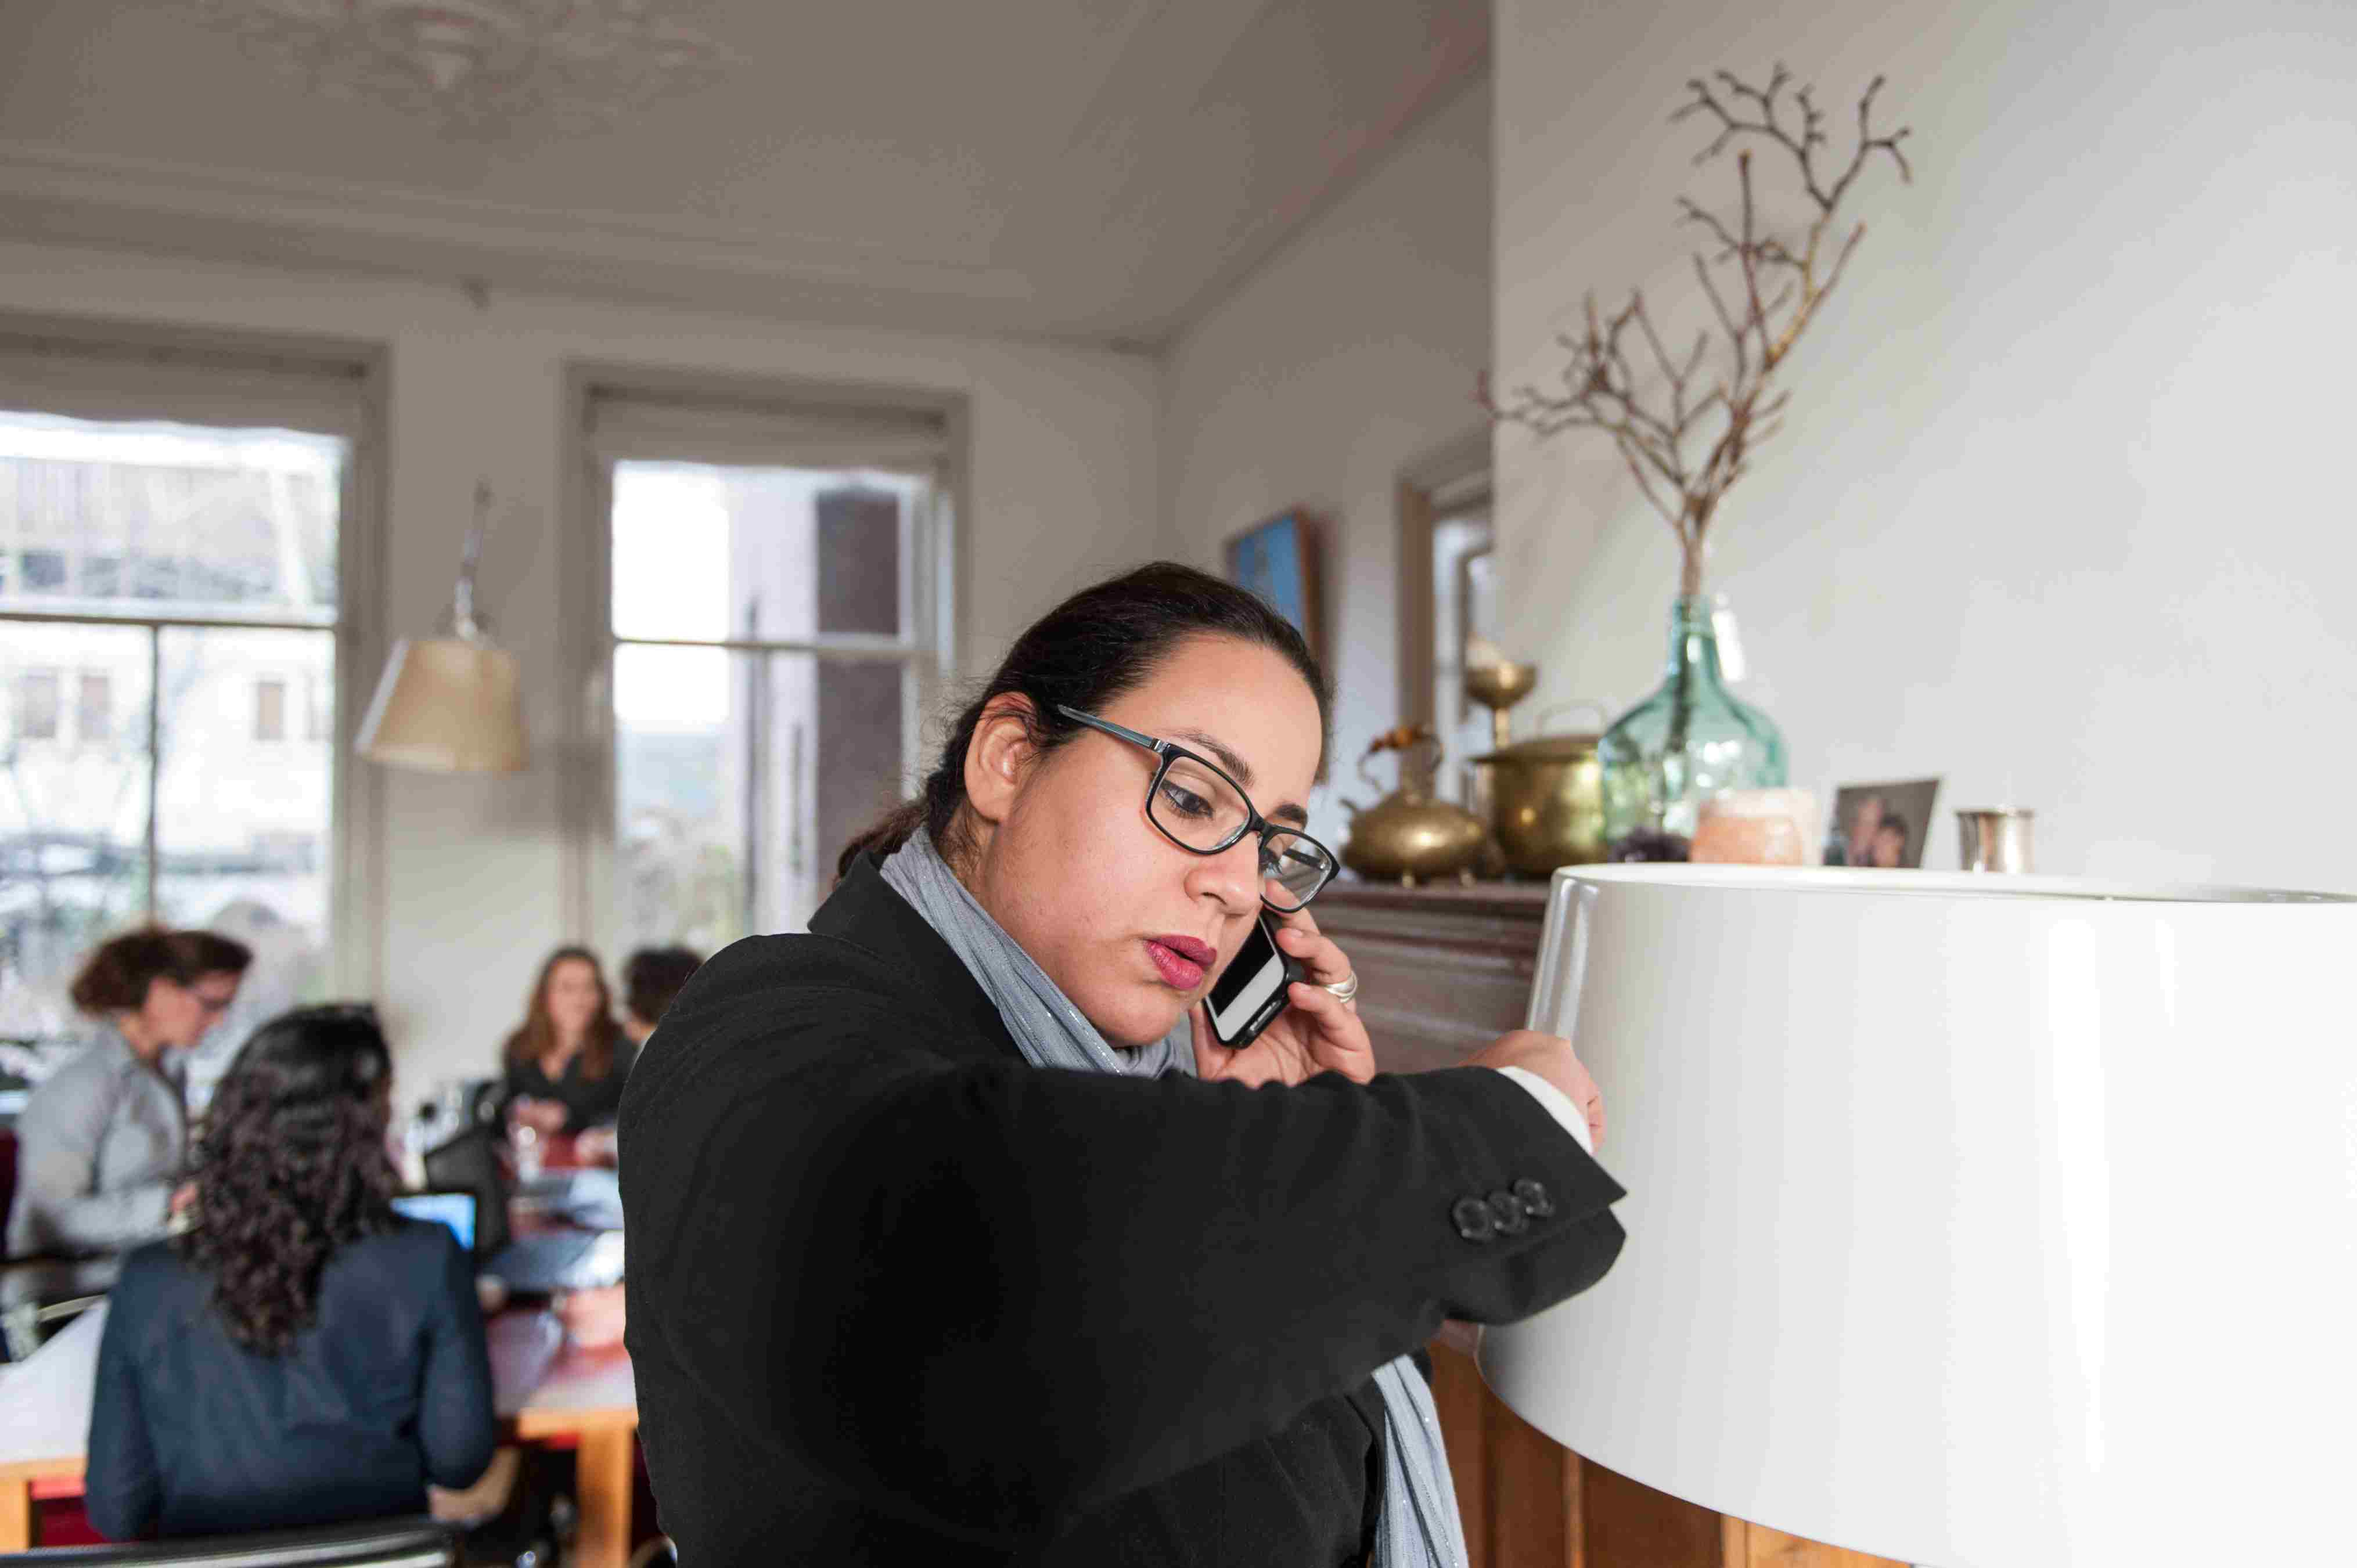 Business woman making phone call during a meeting